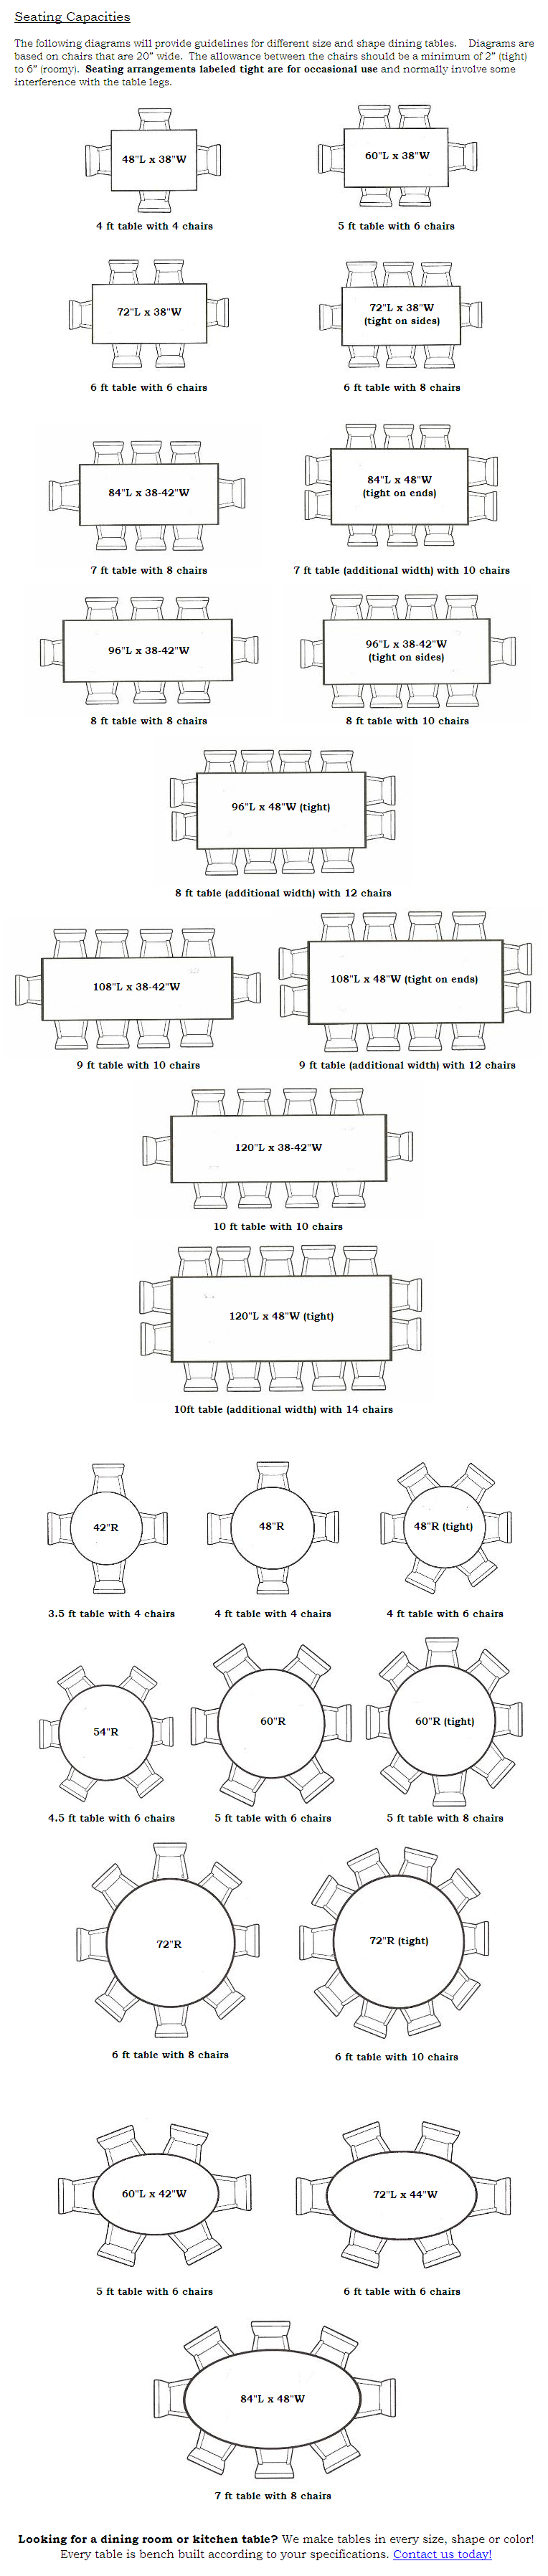 Dining Table Seating Capacities Chart By Size And Shape Home